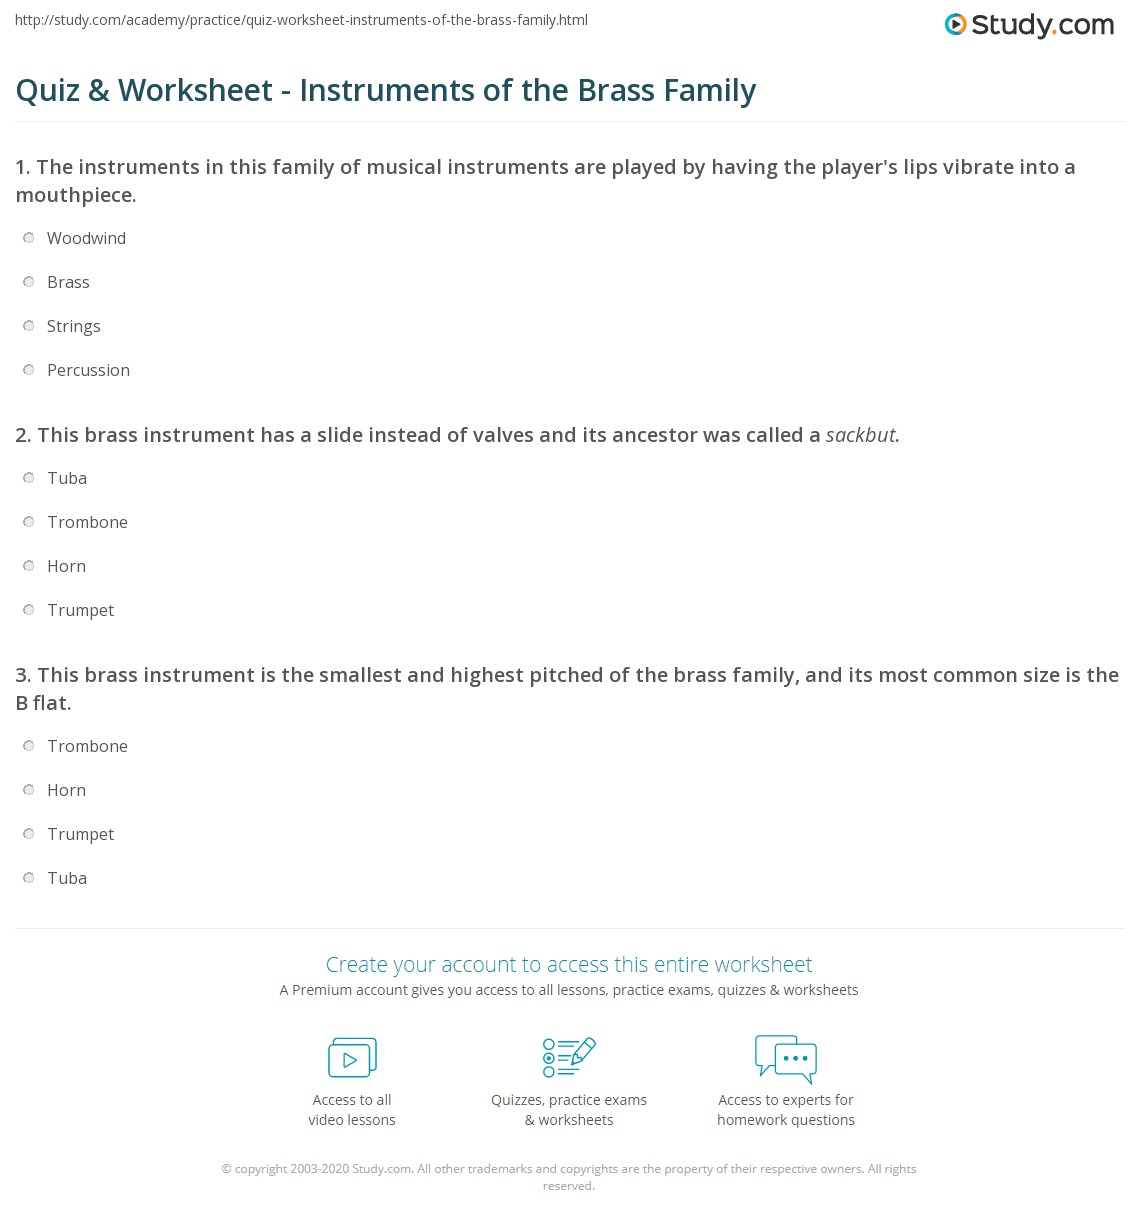 Quiz & Worksheet - Instruments of the Brass Family | Study.com